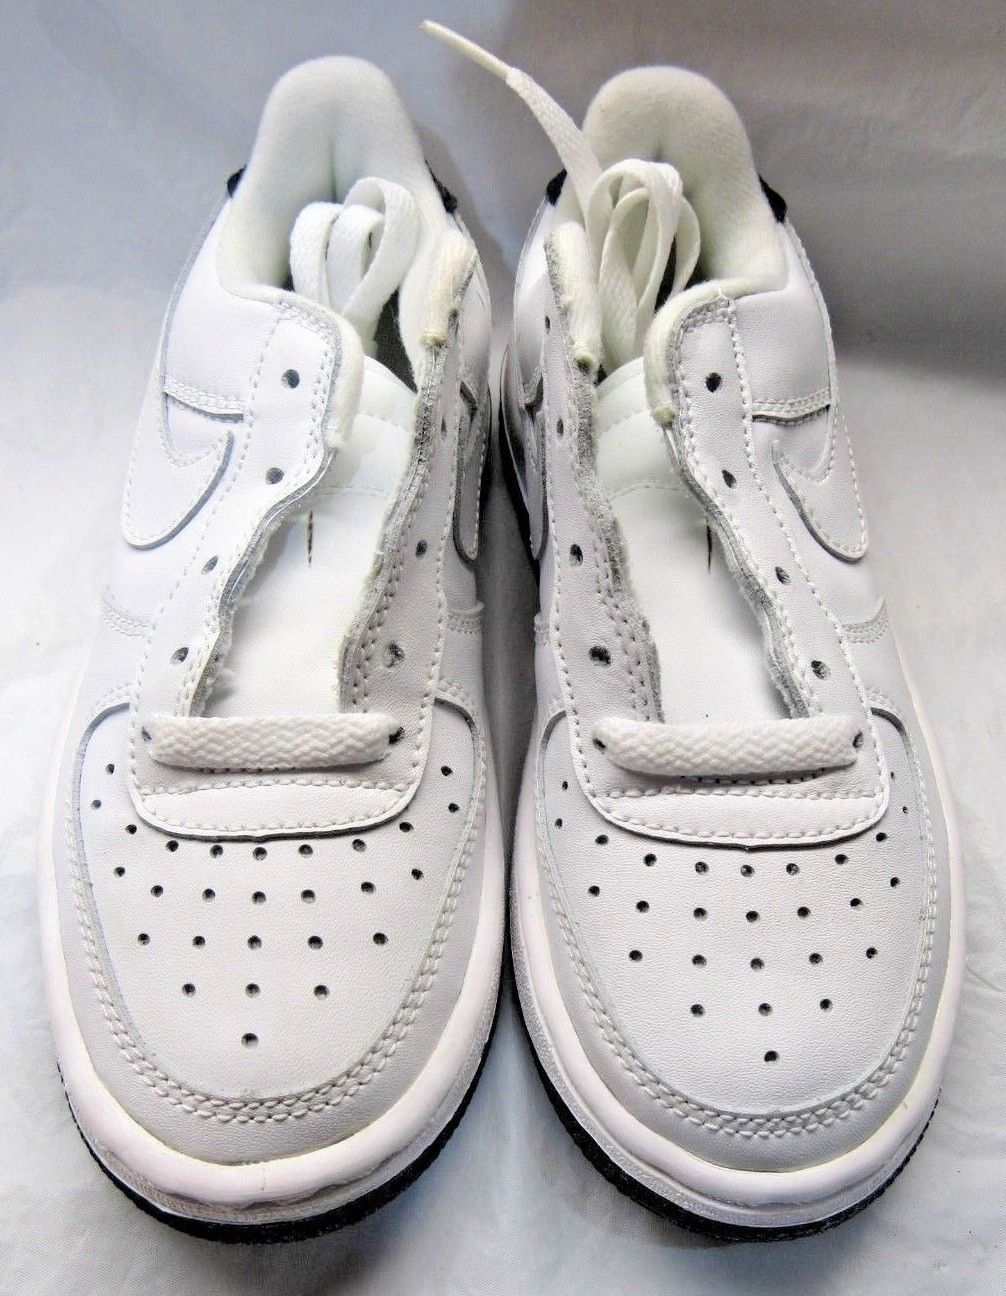 watch 3498a 0b164 S l1600. S l1600. Previous. NIKE 624047-117 KID FORCE 1 (PS) All White  Black Sole Sneakers Size · NIKE 624047-117 ...